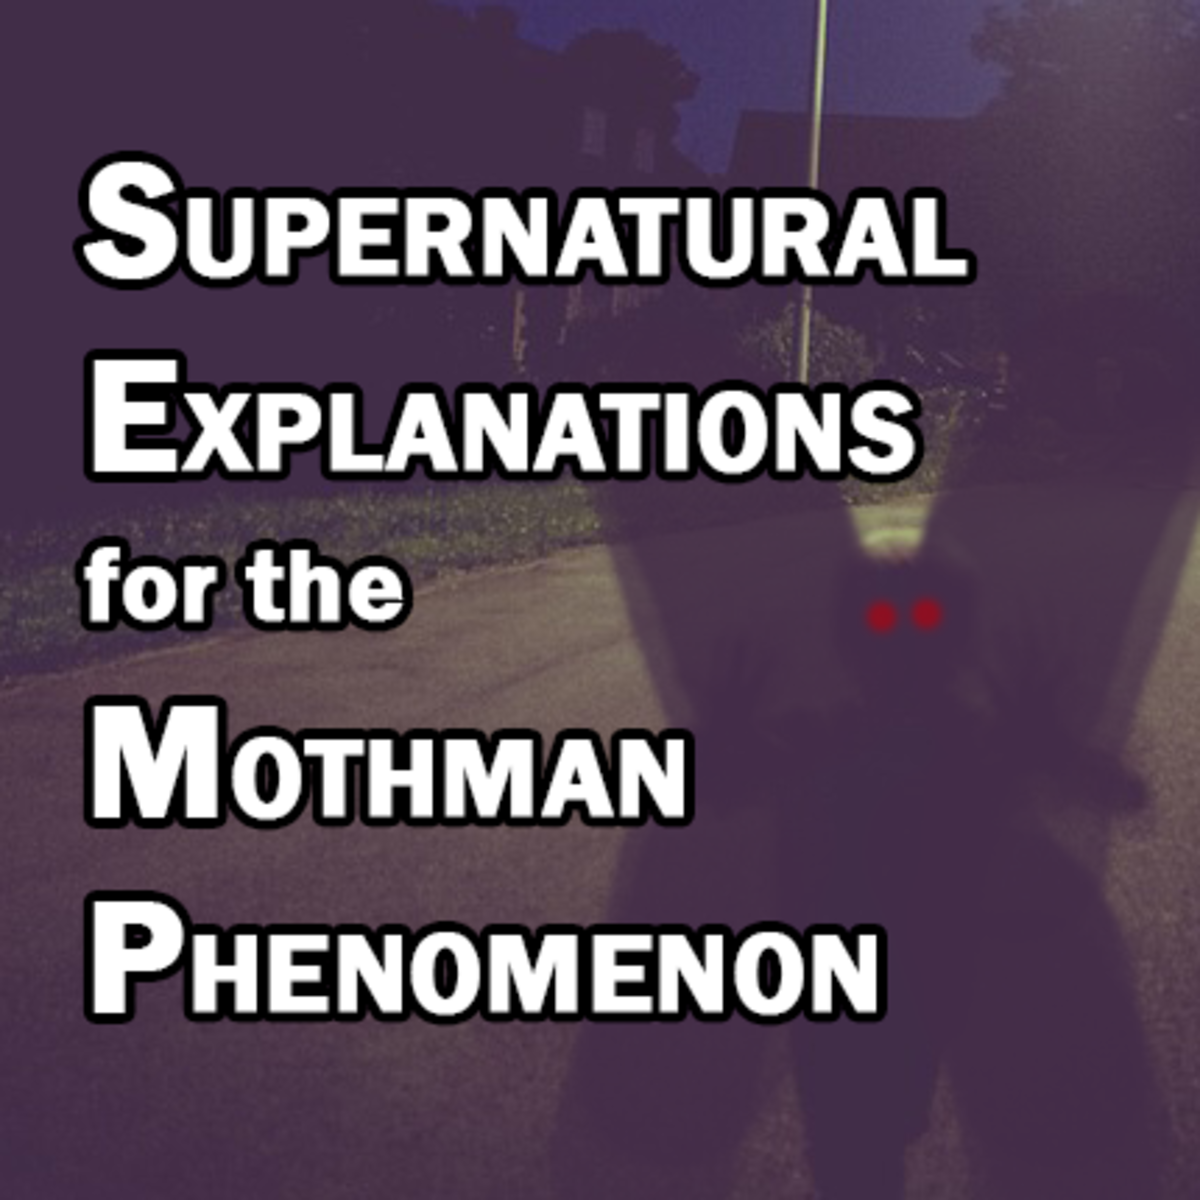 Supernatural Explanations for the Mothman Phenomenon